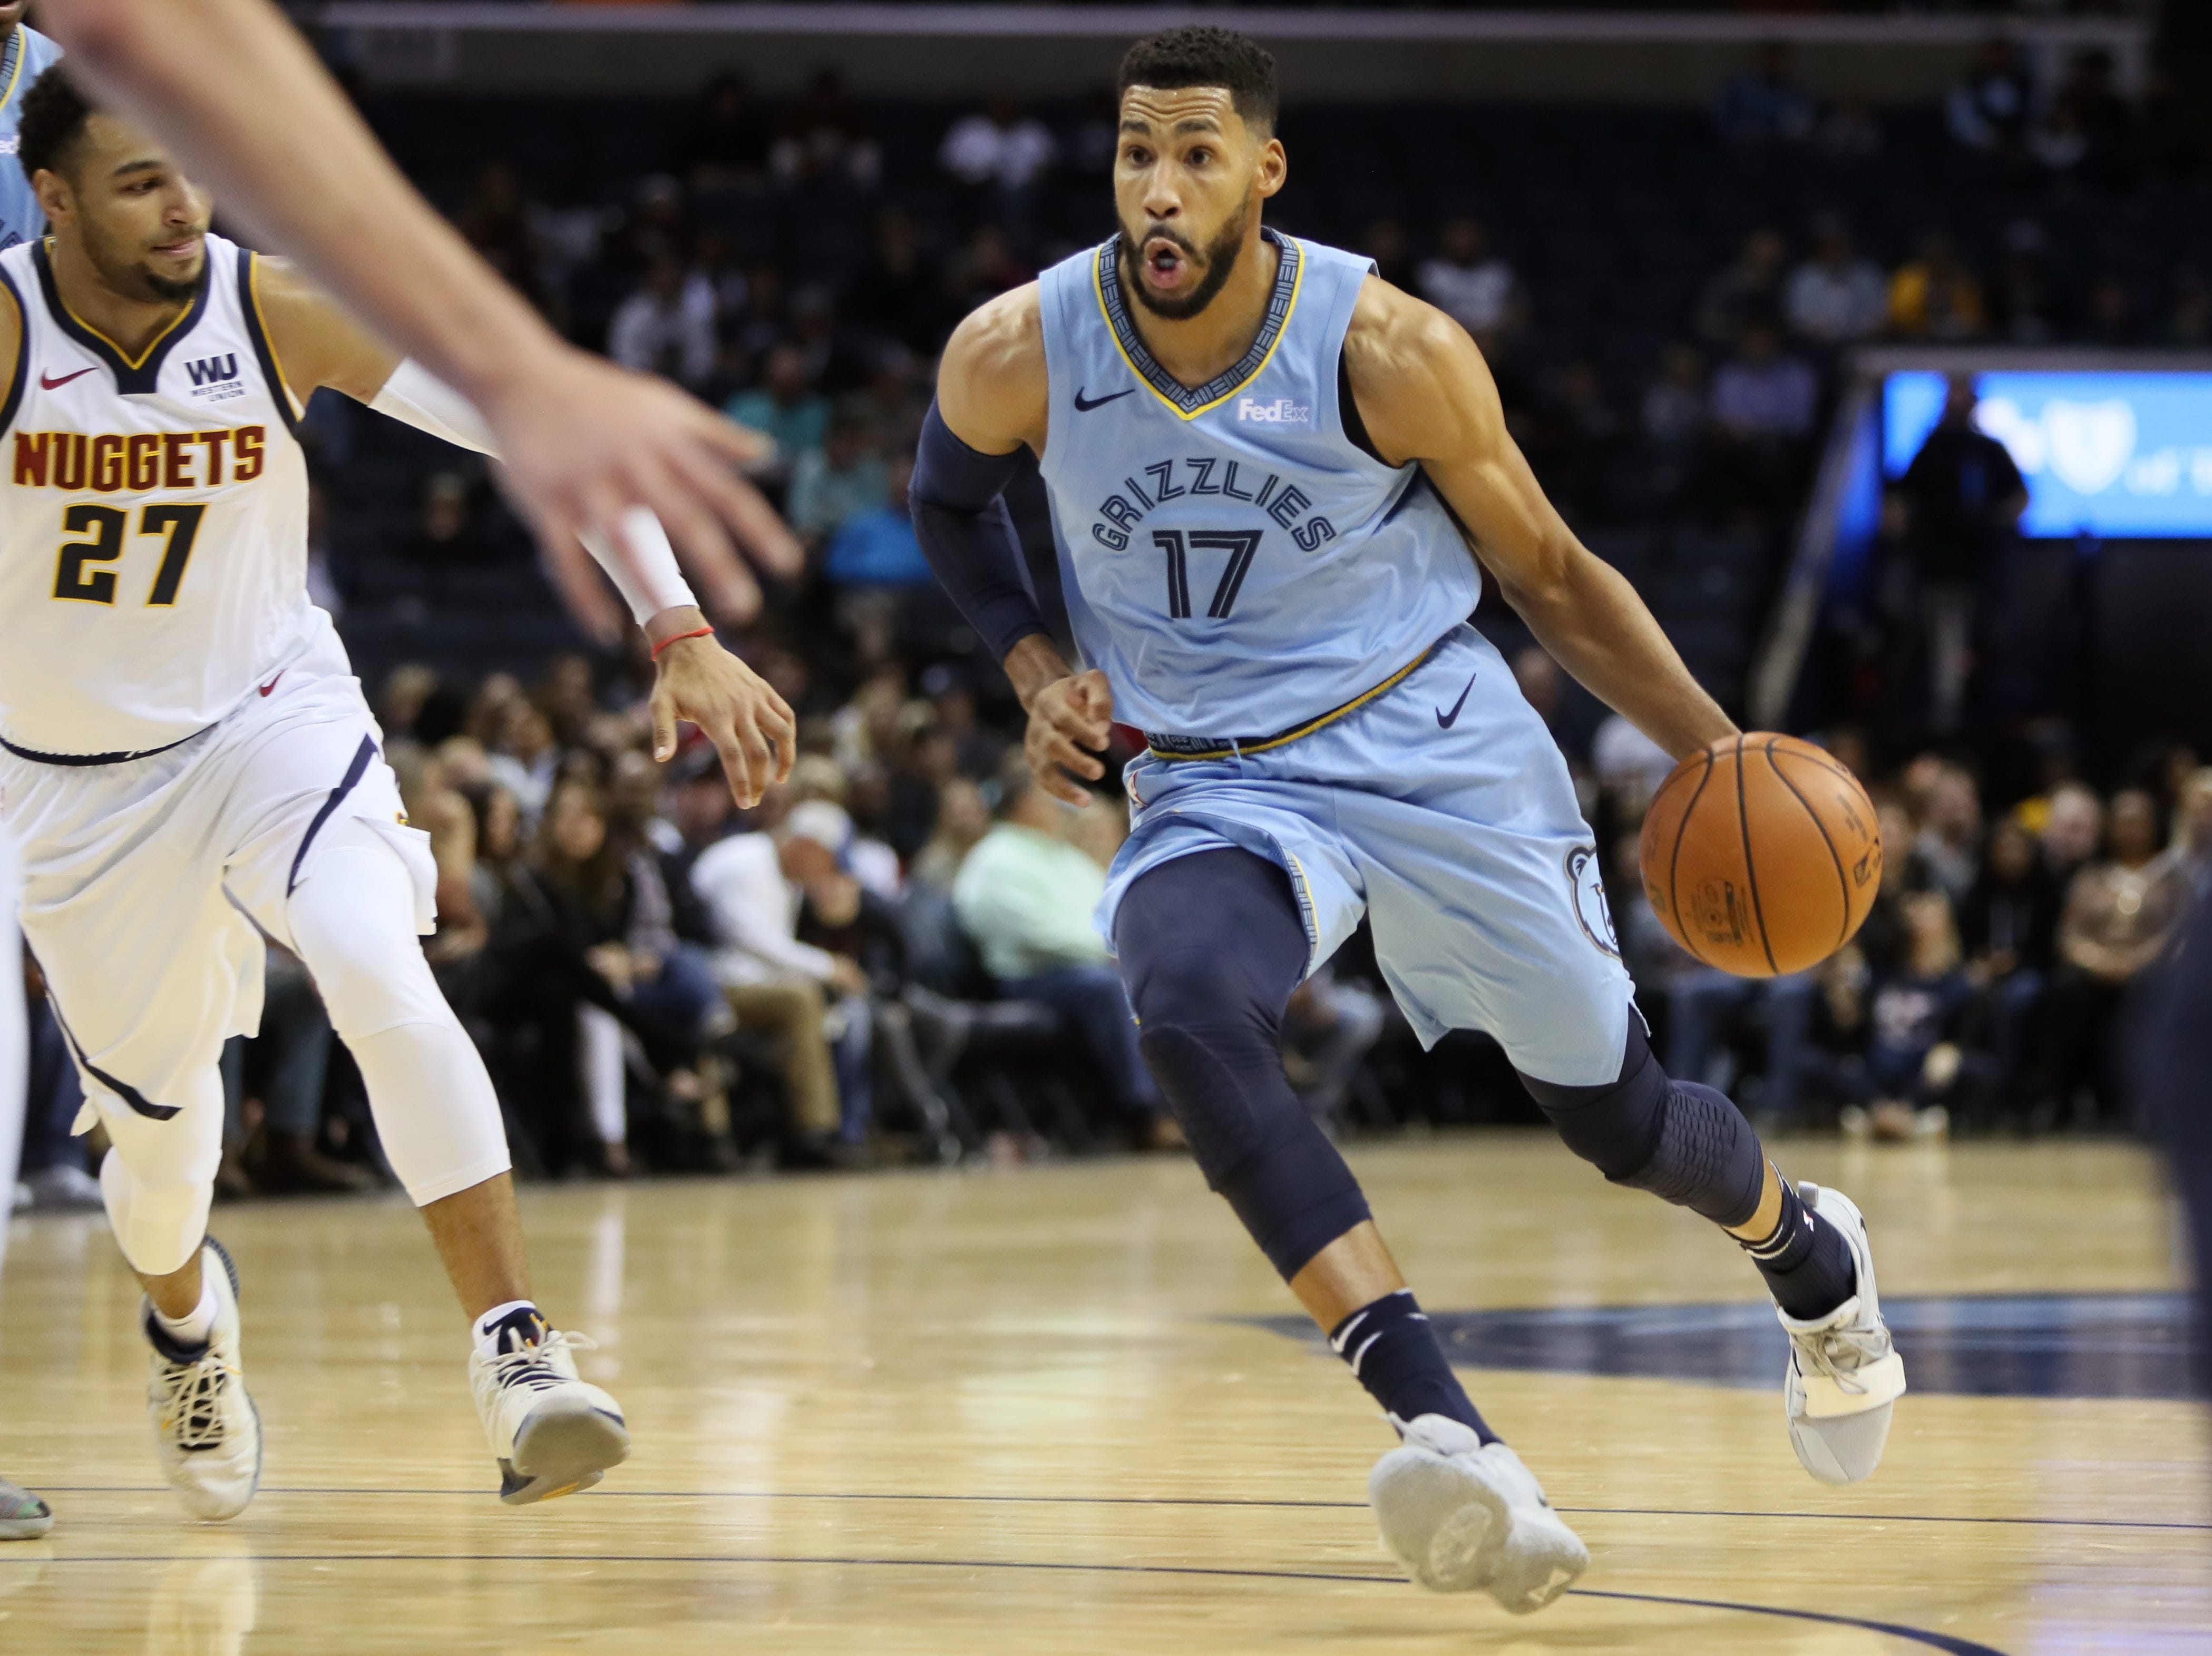 Memphis Grizzlies guard Garrett Temple drives into the lane against the Denver Nuggets during their game at the FedExForum on Wednesday, November 7, 2018.